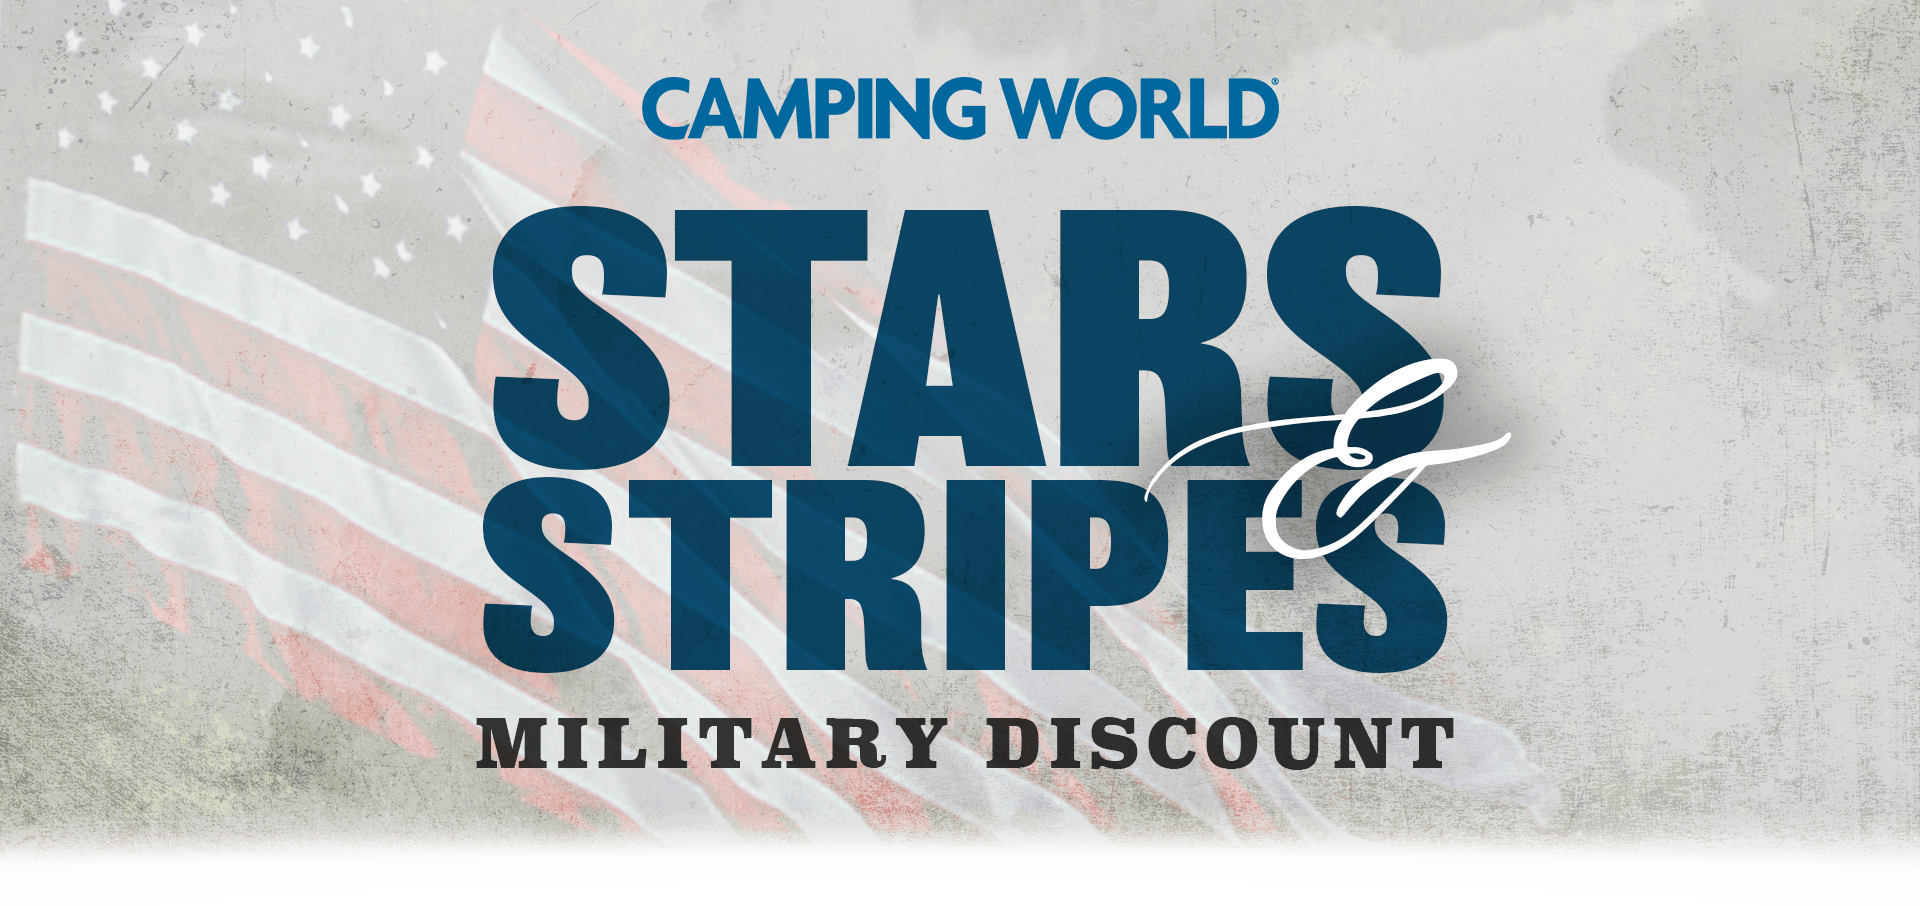 Camping World Star Stripes Military Discount